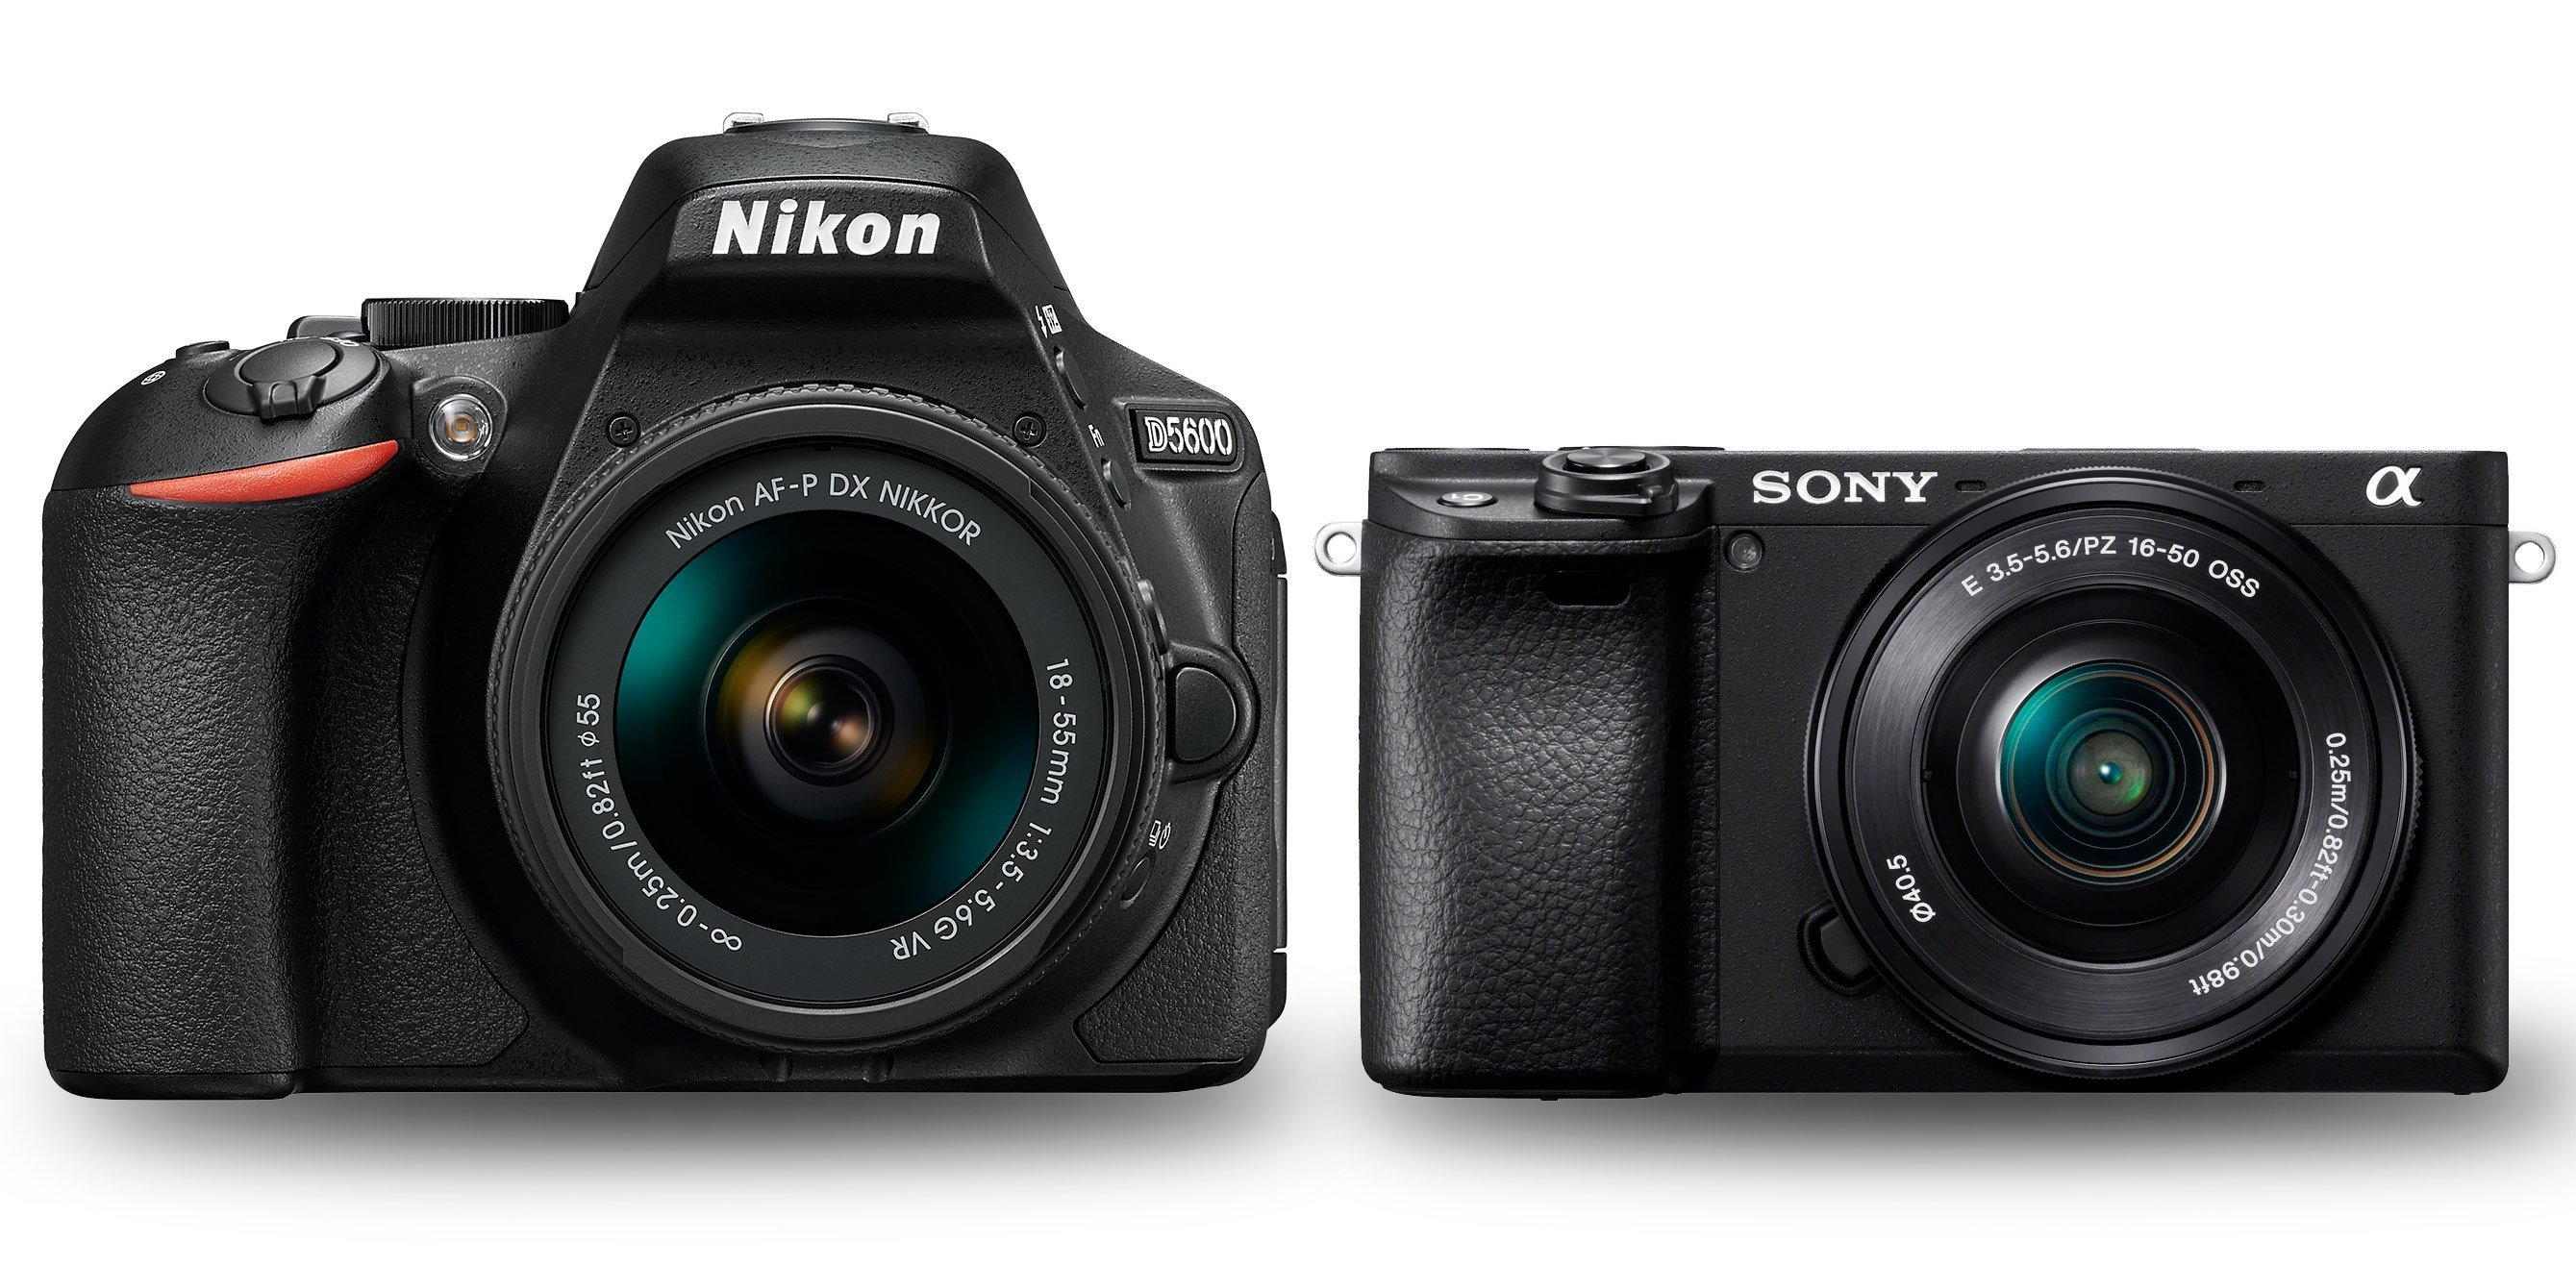 Nikon D5600 vs Sony a6400: Which Should You Buy? – Light And